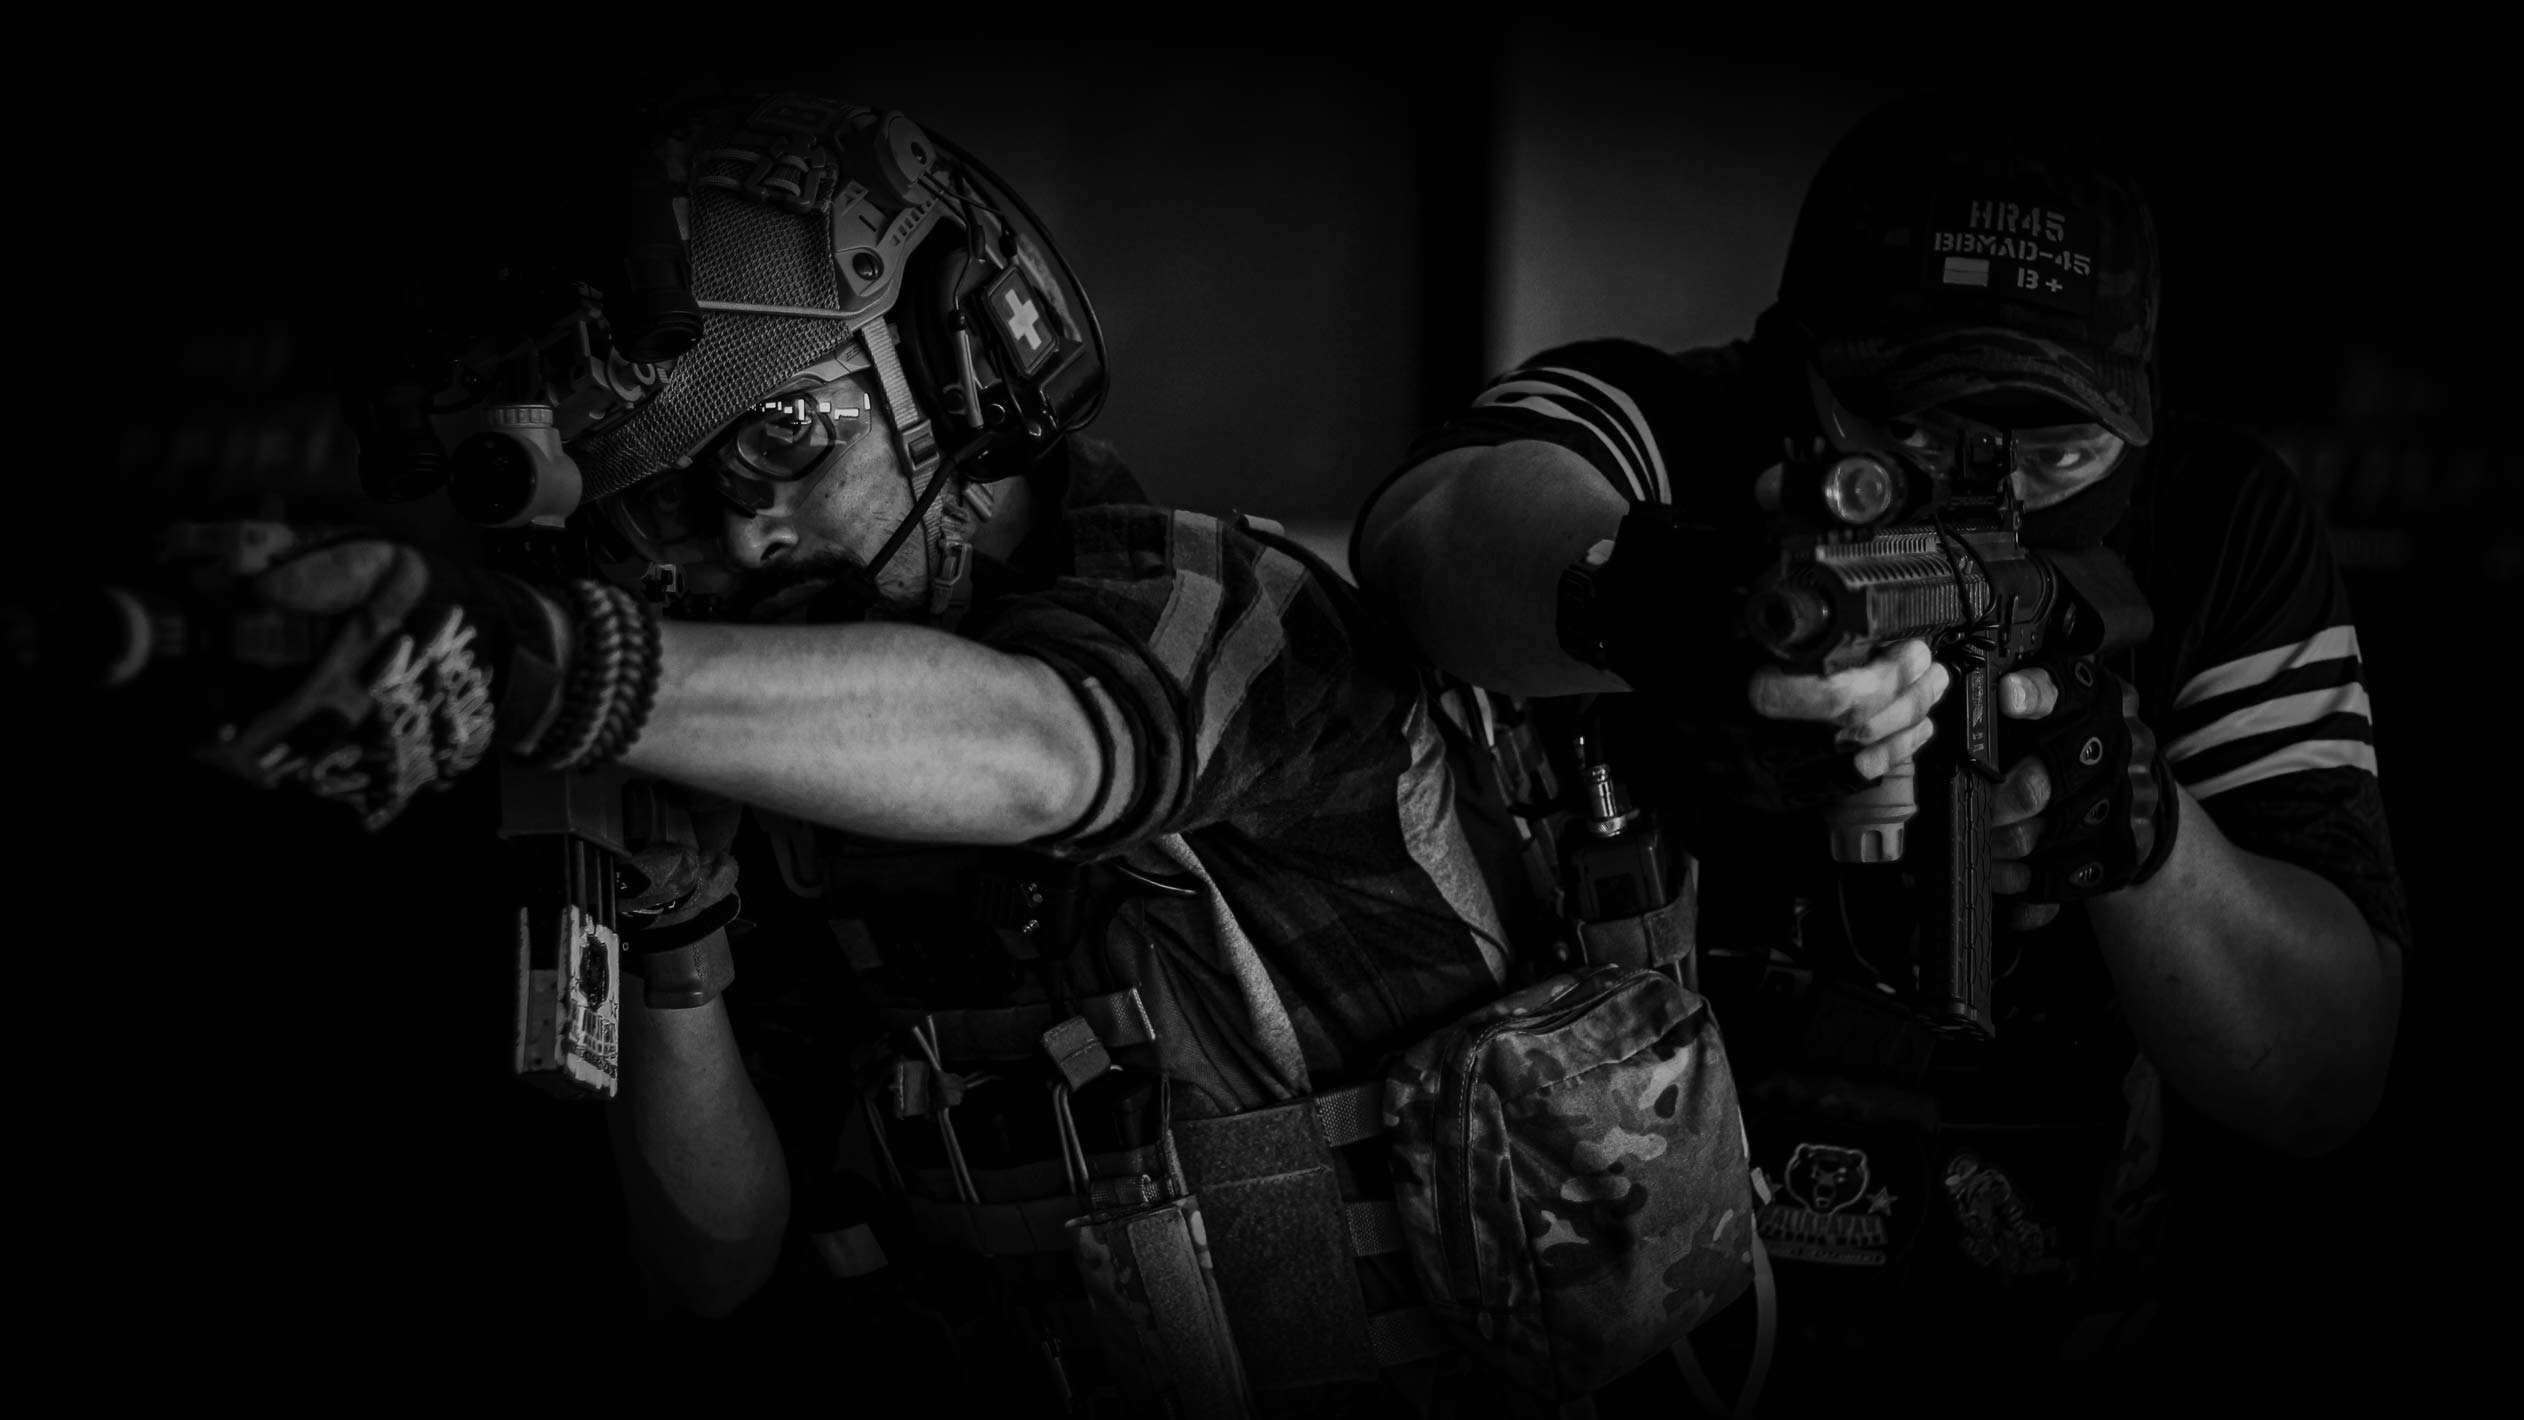 SWAT team breaching a room, an analogy for disruptive ads.